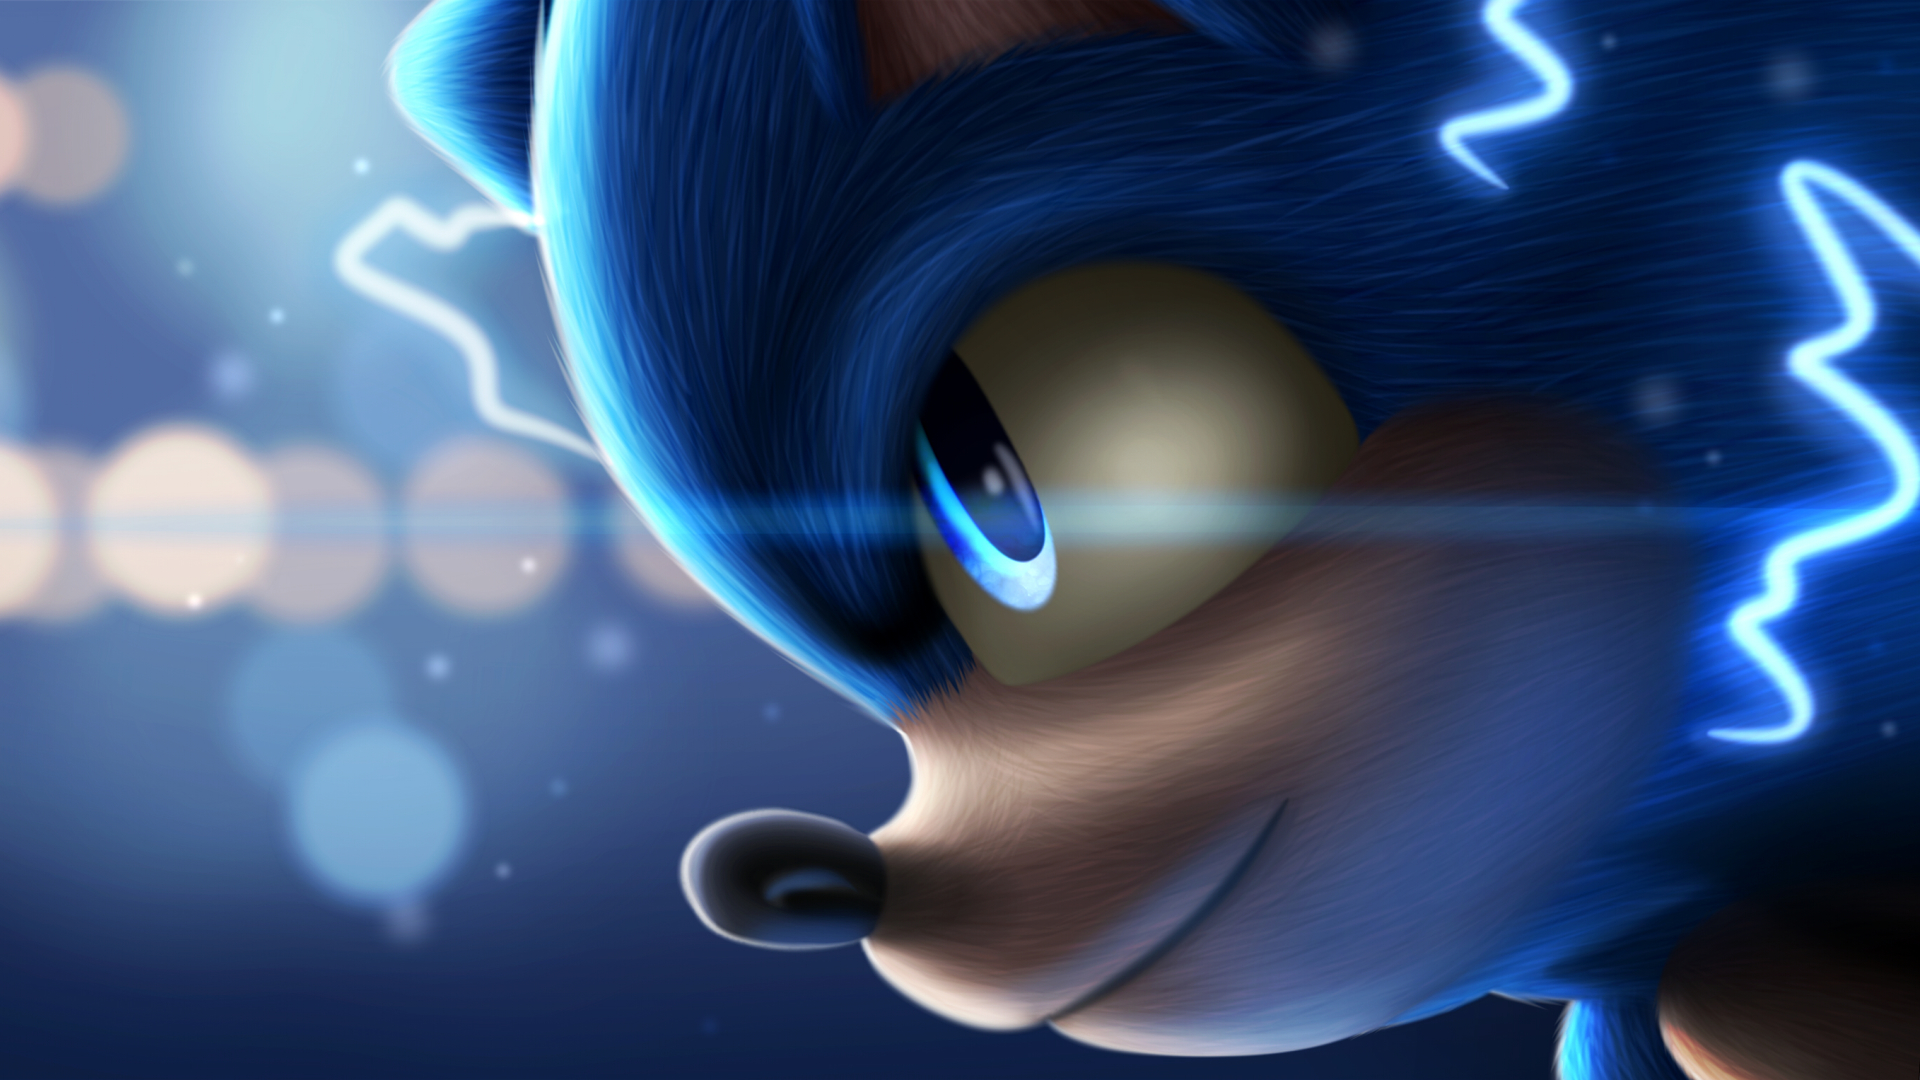 1920x1080 Sonic The Hedgehog Art 1080p Laptop Full Hd Wallpaper Hd Movies 4k Wallpapers Images Photos And Background